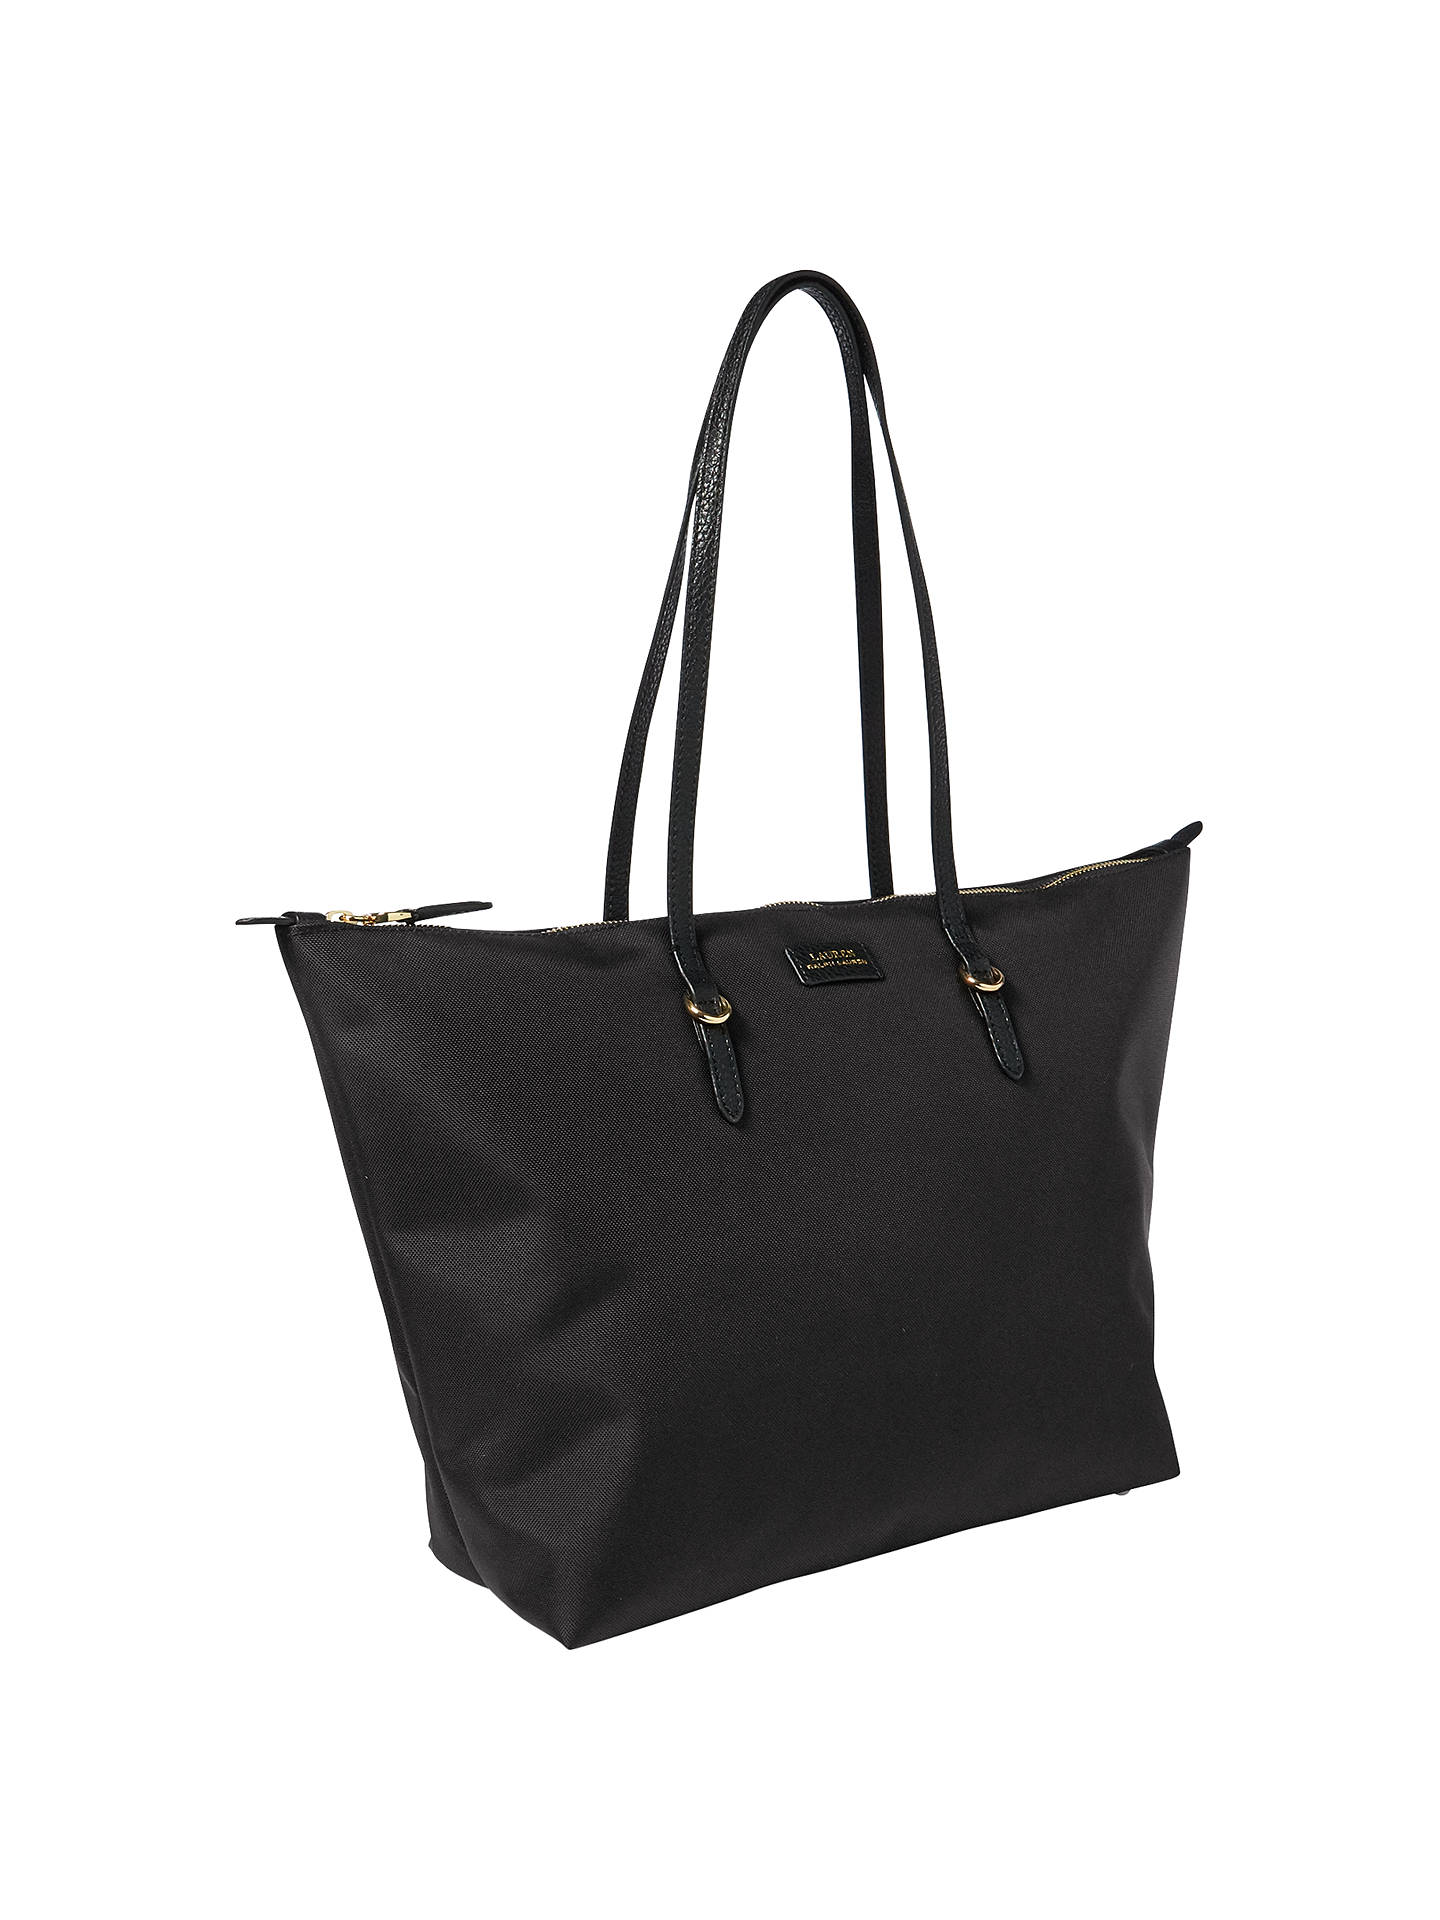 d876b778367f ... clearance buylauren ralph lauren nylon oxford tote bag black online at  johnlewis 96a42 79723